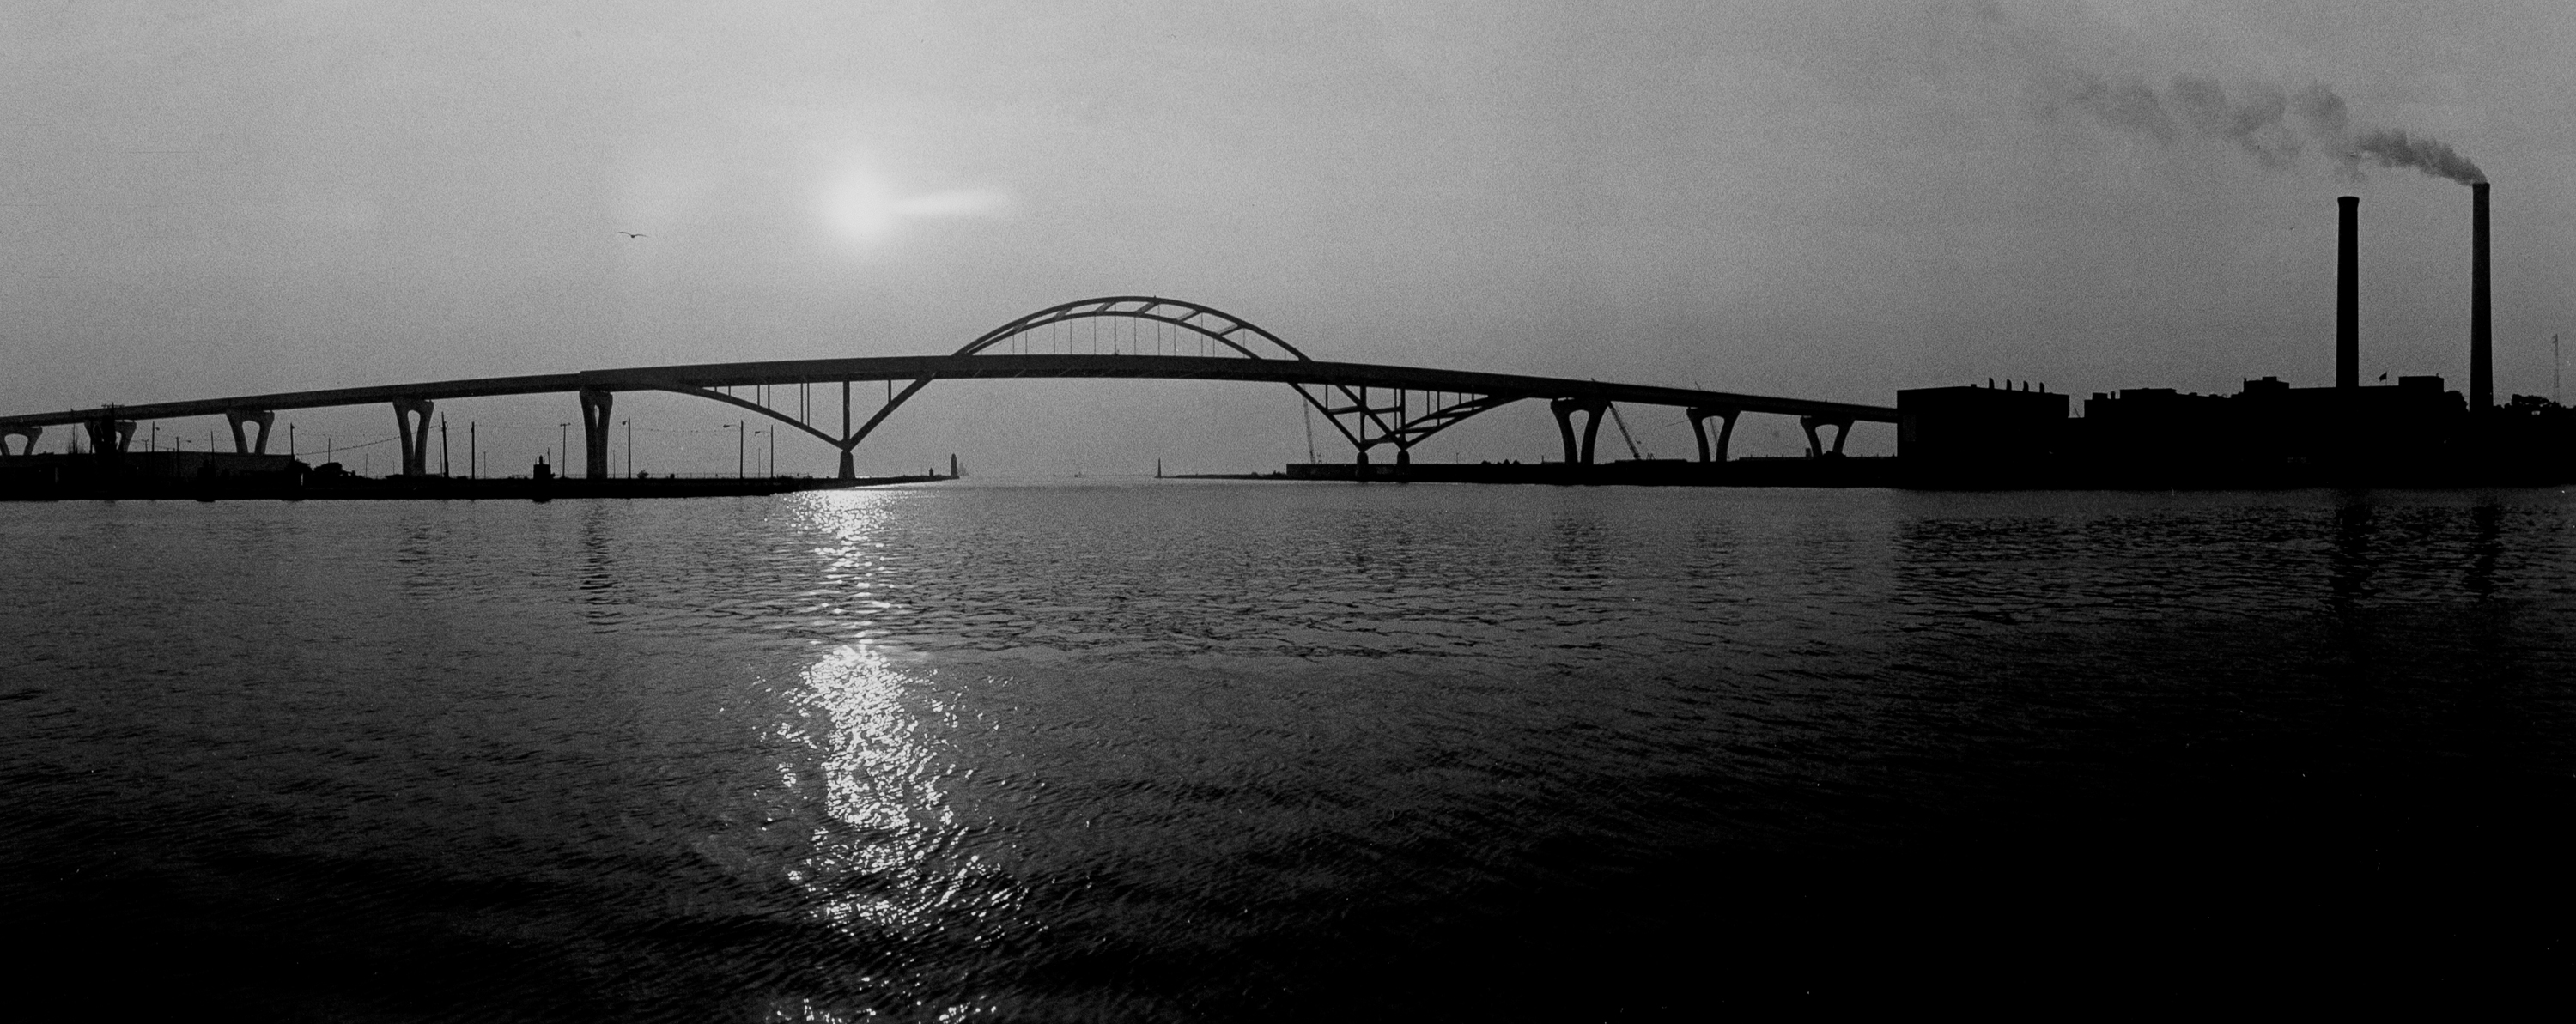 <table class=&quot;lightbox&quot;><tr><td colspan=2 class=&quot;lightbox-title&quot;>Hoan Bridge</td></tr><tr><td colspan=2 class=&quot;lightbox-caption&quot;>The rising sun illuminates the Hoan Bridge in this 1973 photograph.</td></tr><tr><td colspan=2 class=&quot;lightbox-spacer&quot;></td></tr><tr class=&quot;lightbox-detail&quot;><td class=&quot;cell-title&quot;>Source: </td><td class=&quot;cell-value&quot;>Photograph by Alan Magayne-Roshak. Copyright 2013. Reprinted with permission. </td></tr><tr class=&quot;filler-row&quot;><td colspan=2>&nbsp;</td></tr></table>